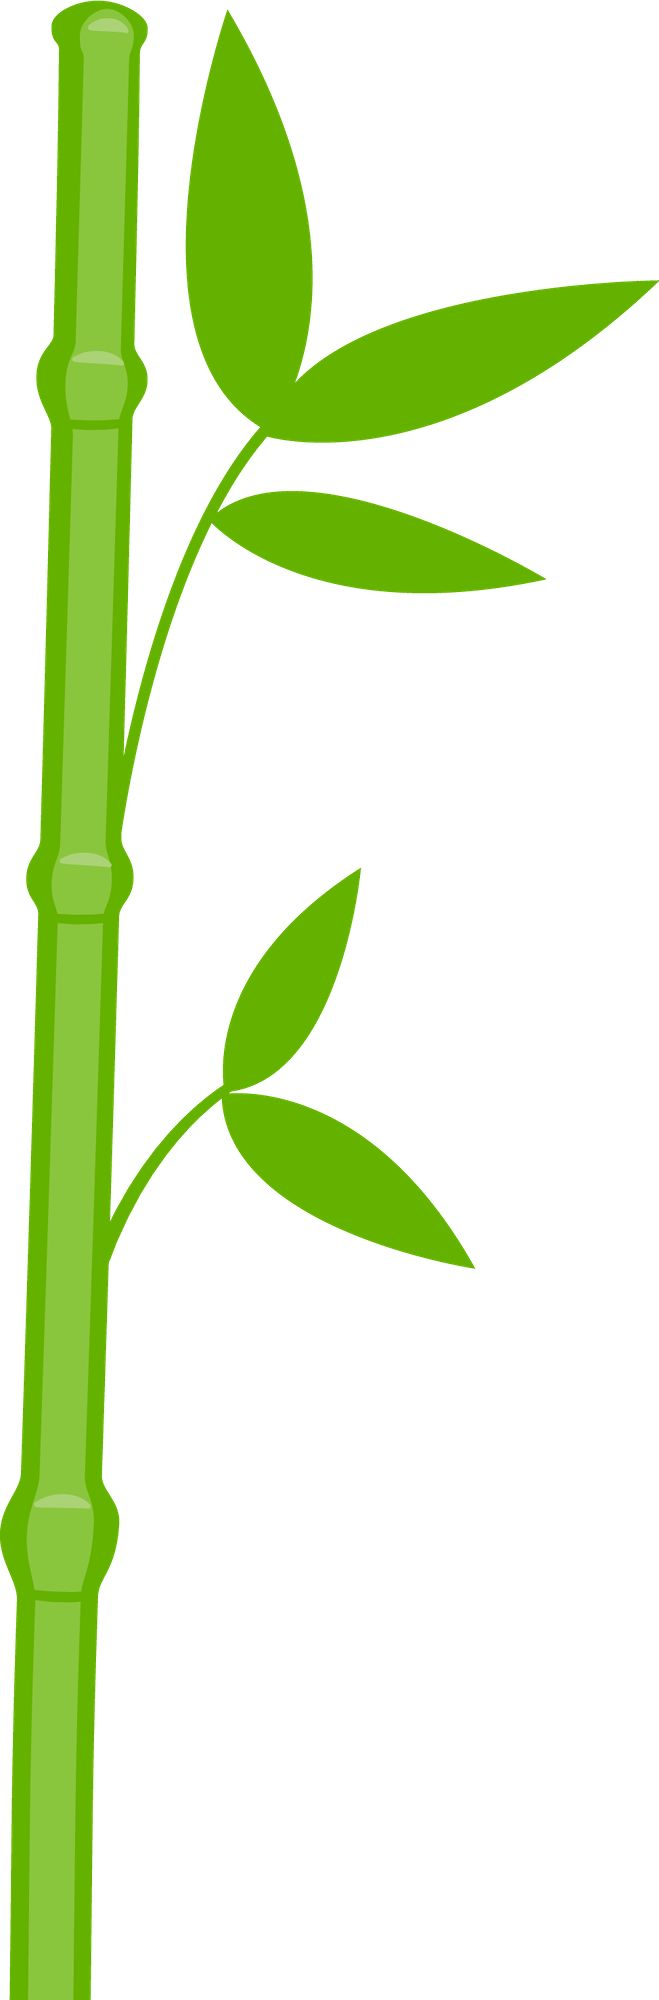 659x2000 Bamboo Clipart Stem